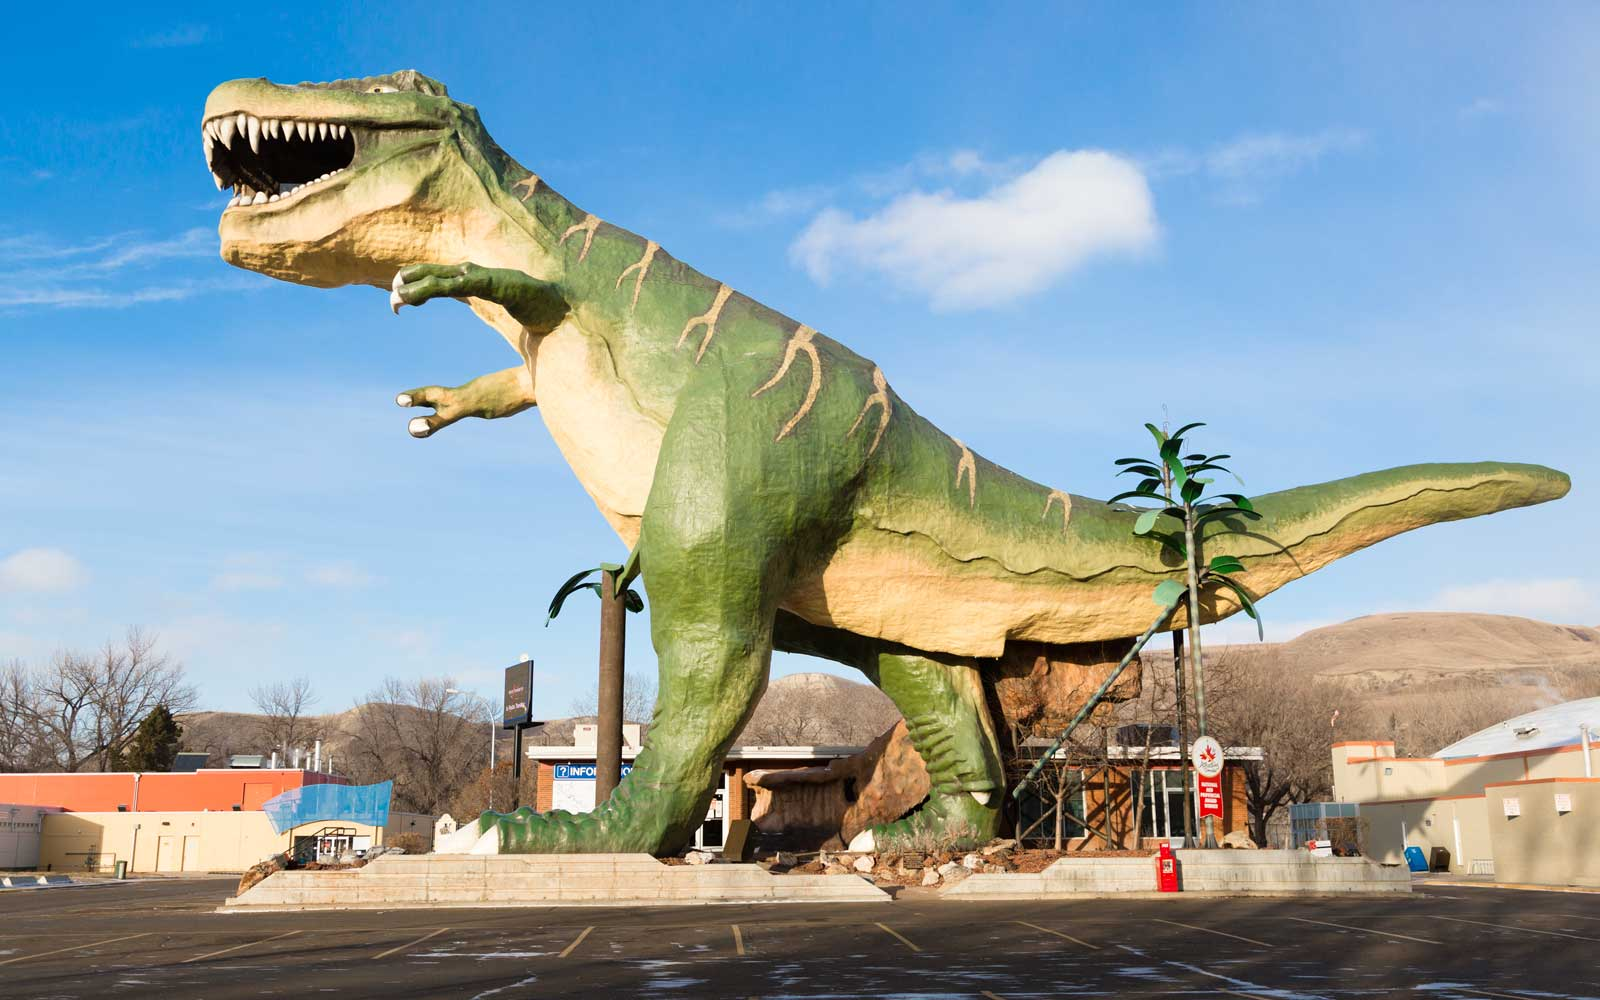 """The """"World's Largest Dinosaur"""" is the name of a model Tyrannosaurus rex located in the town of Drumheller, Alberta, Canada."""